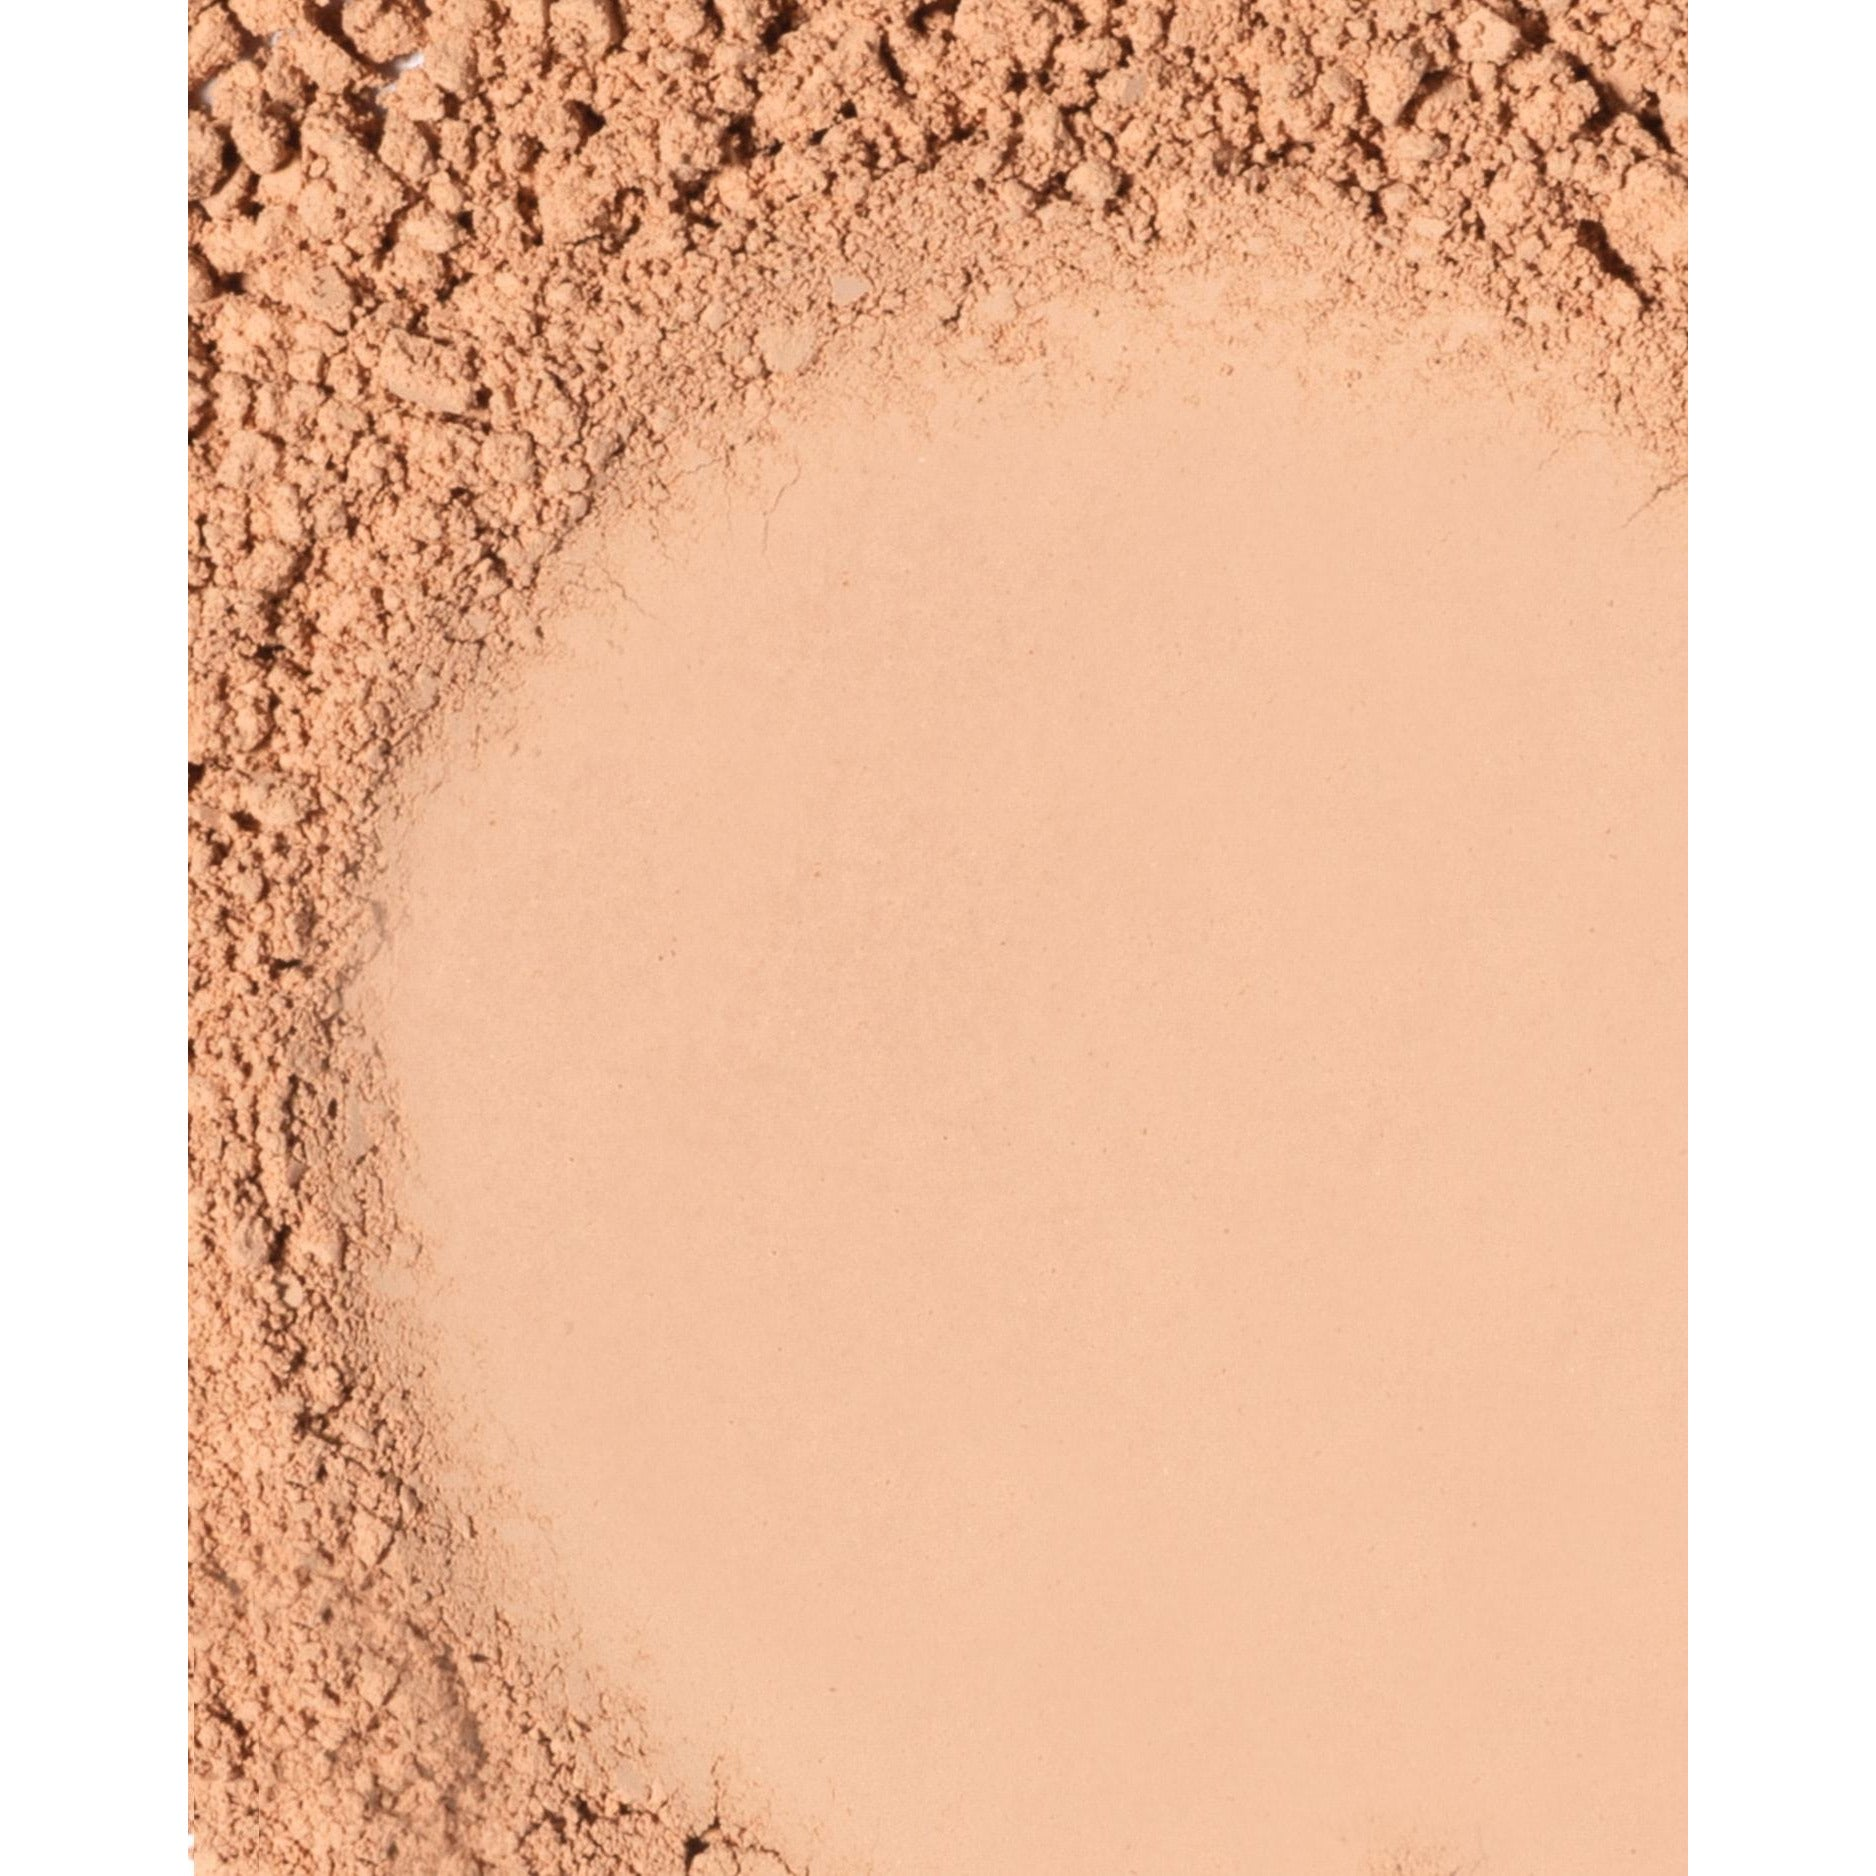 Nice - Omiana Loose Powder Mineral Foundation No Titanium Dioxide and No Mica